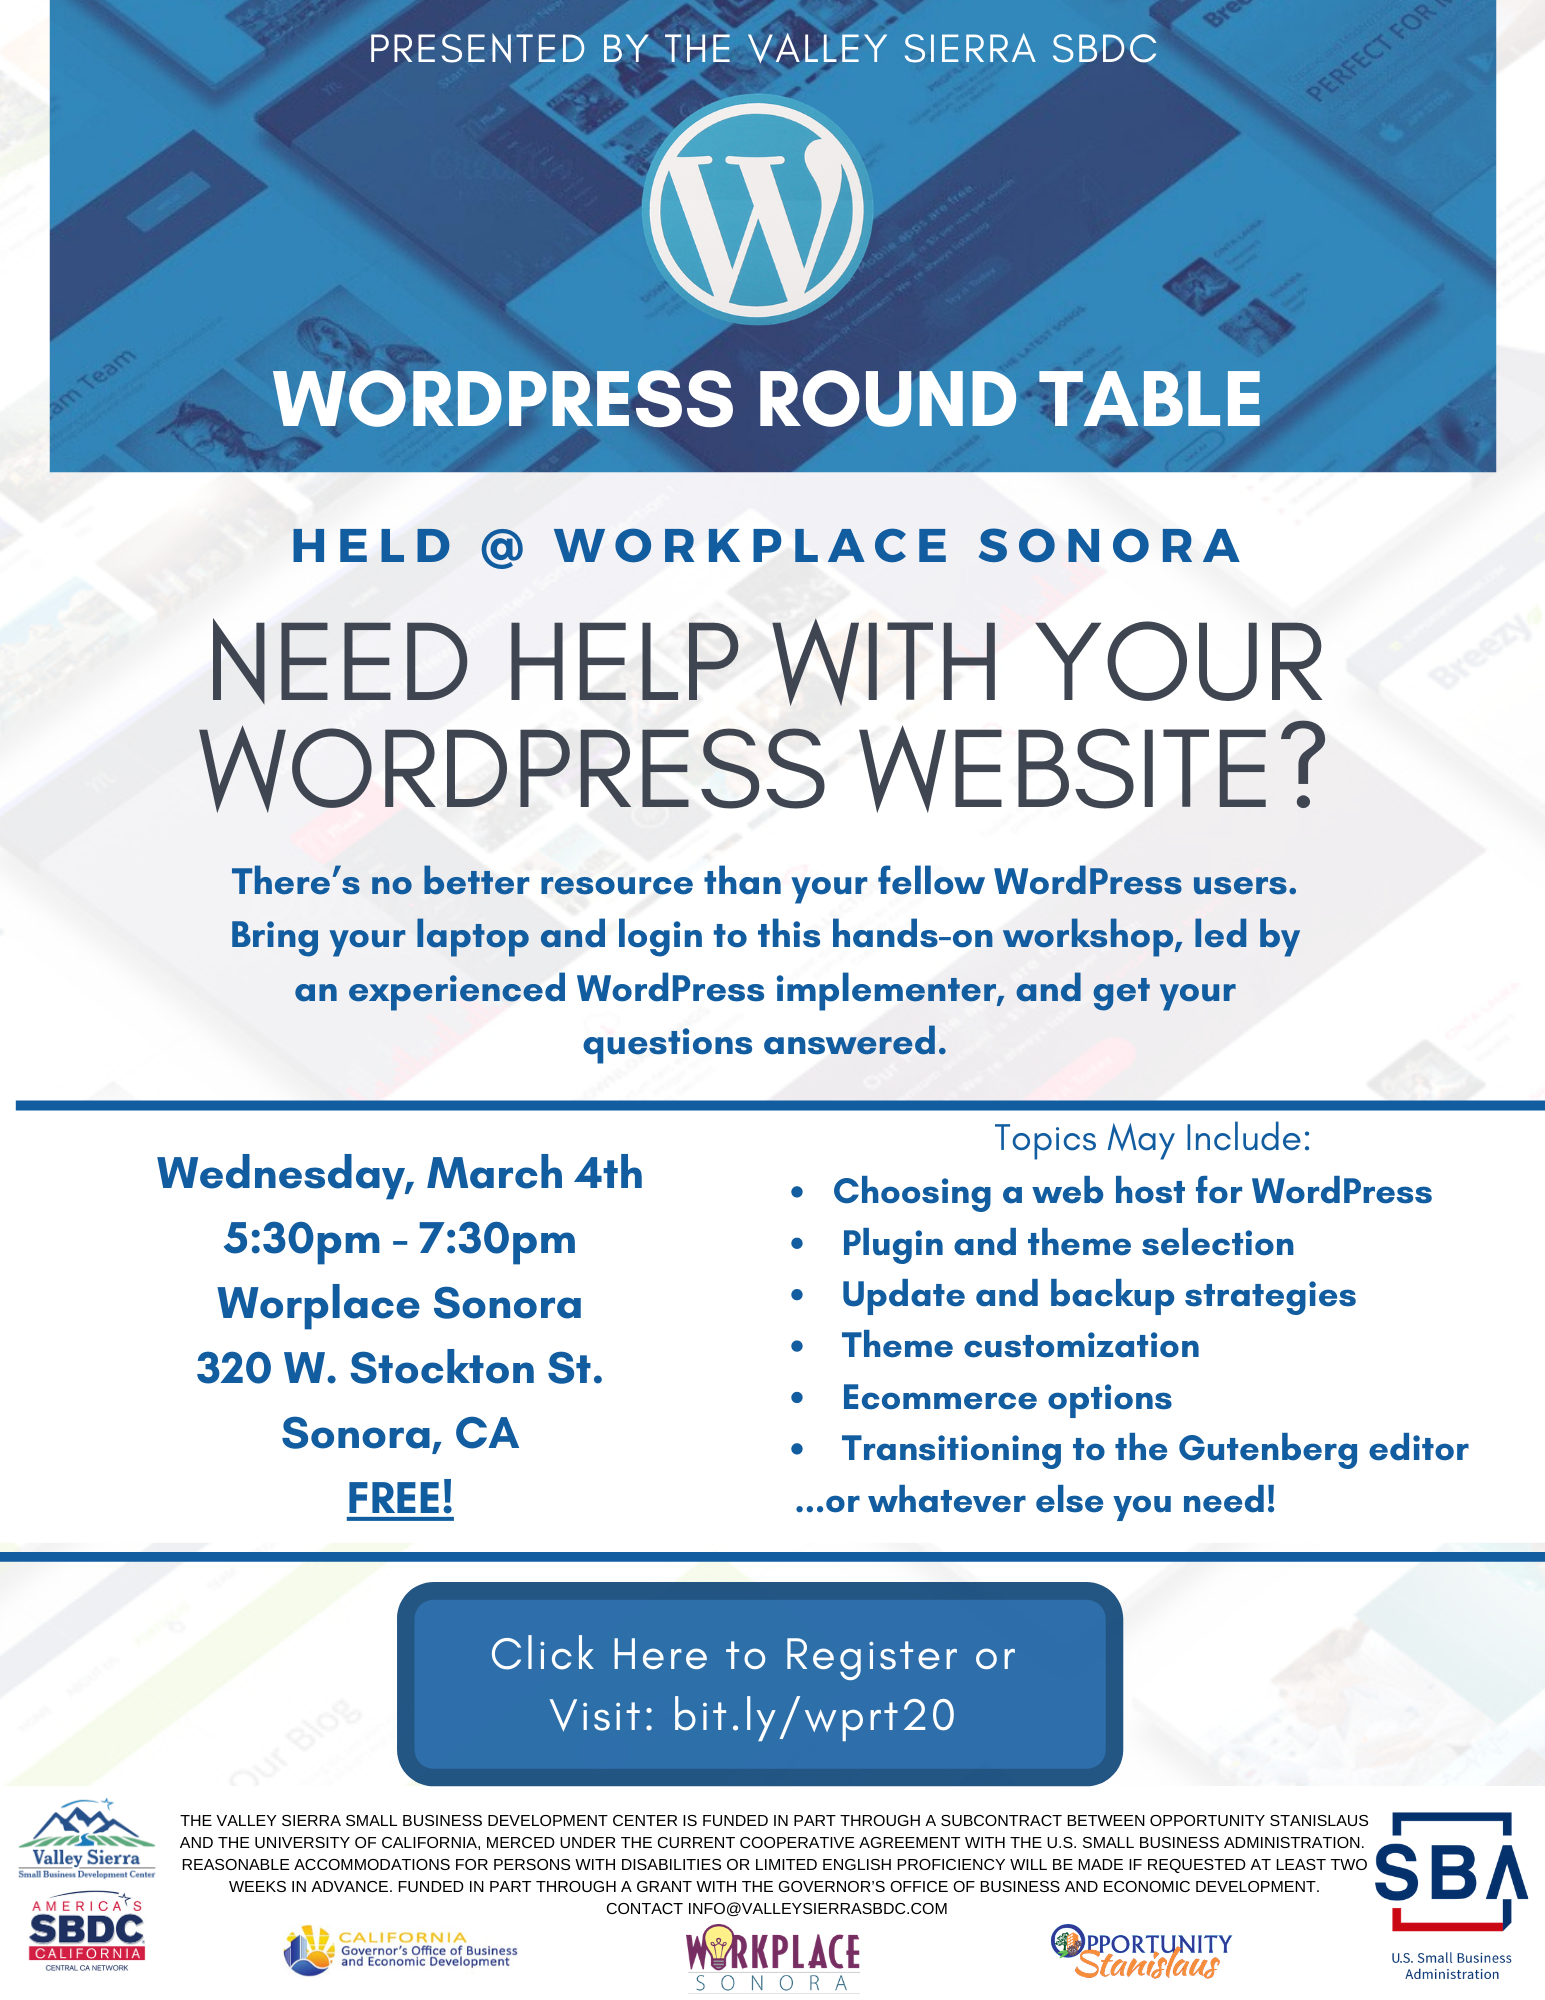 Event Flyer, Sonora: WordPress Round Table Workshop, 3_4_20, 5:30pm - 7:30pm. Free Registration Now Open! at Workplace Sonora, 320 W. Stockton Street, Sonora, Ca.